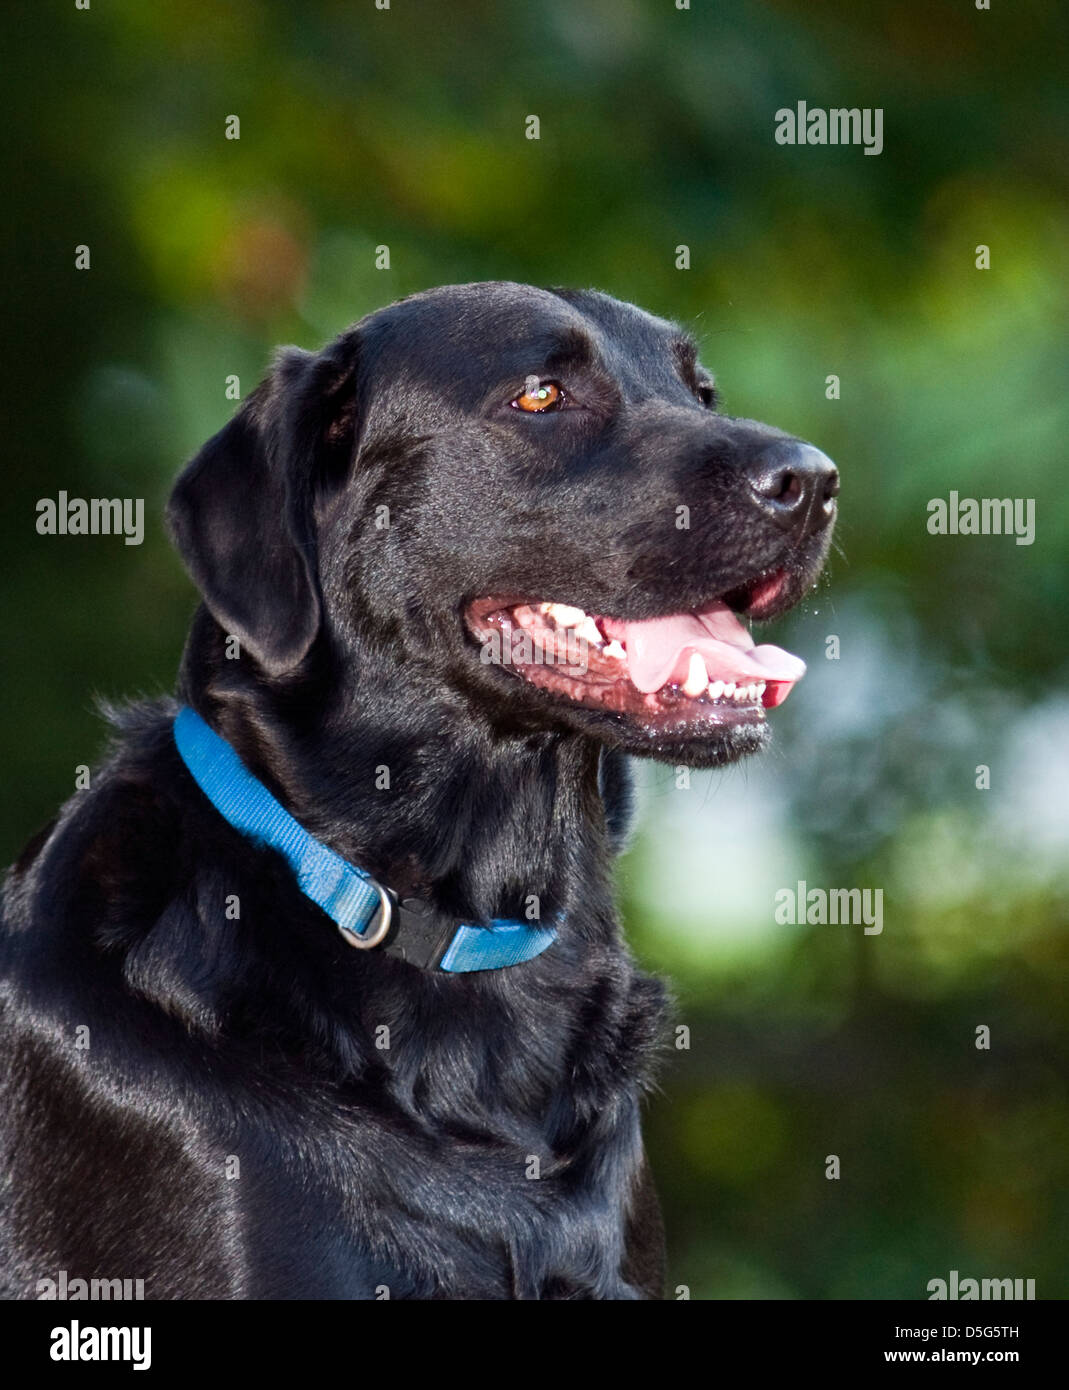 Adult male black Labrador Retriever in late afternoon sun (Canis lupus familiaris) - Stock Image